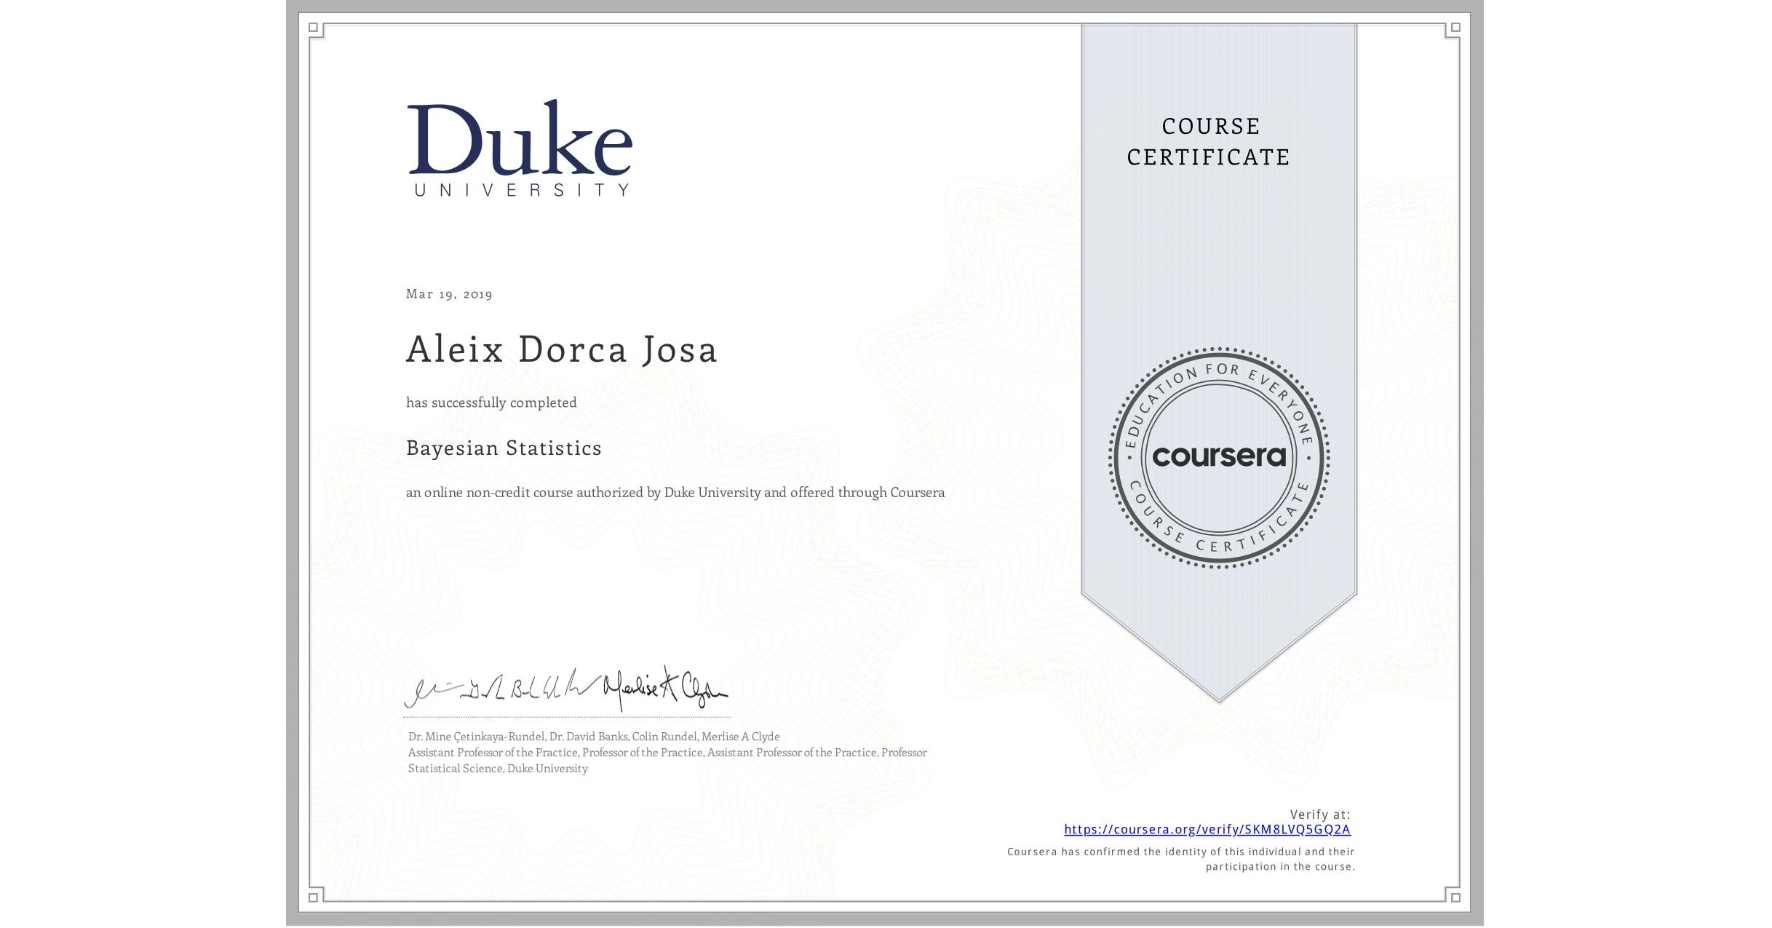 View certificate for Aleix Dorca Josa, Bayesian Statistics, an online non-credit course authorized by Duke University and offered through Coursera